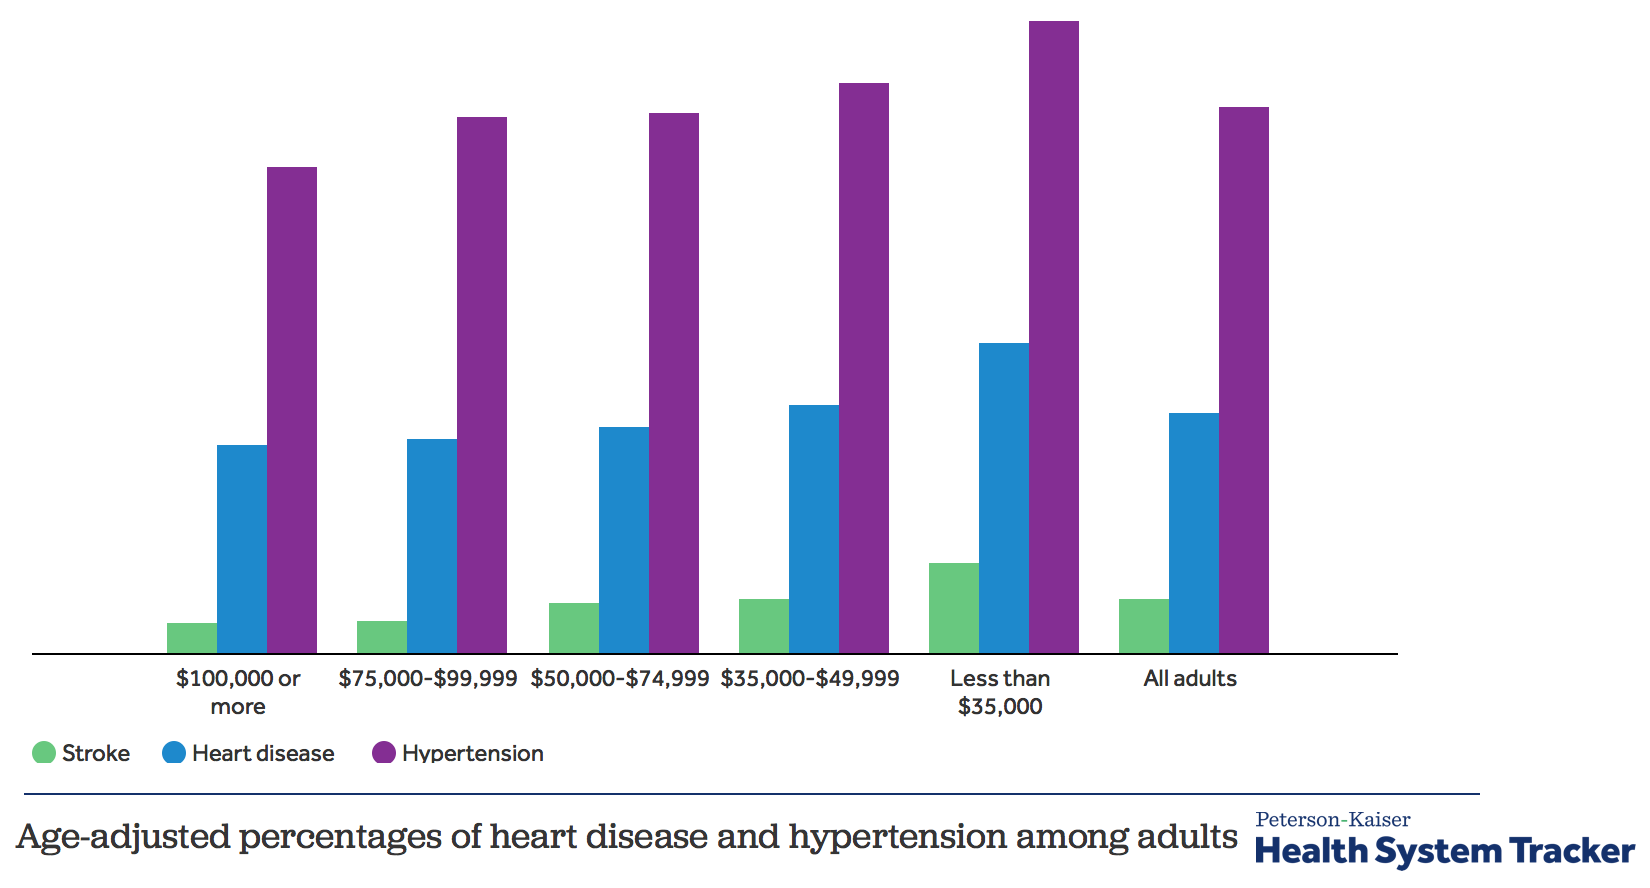 What do we know about cardiovascular disease spending and outcomes in the United States